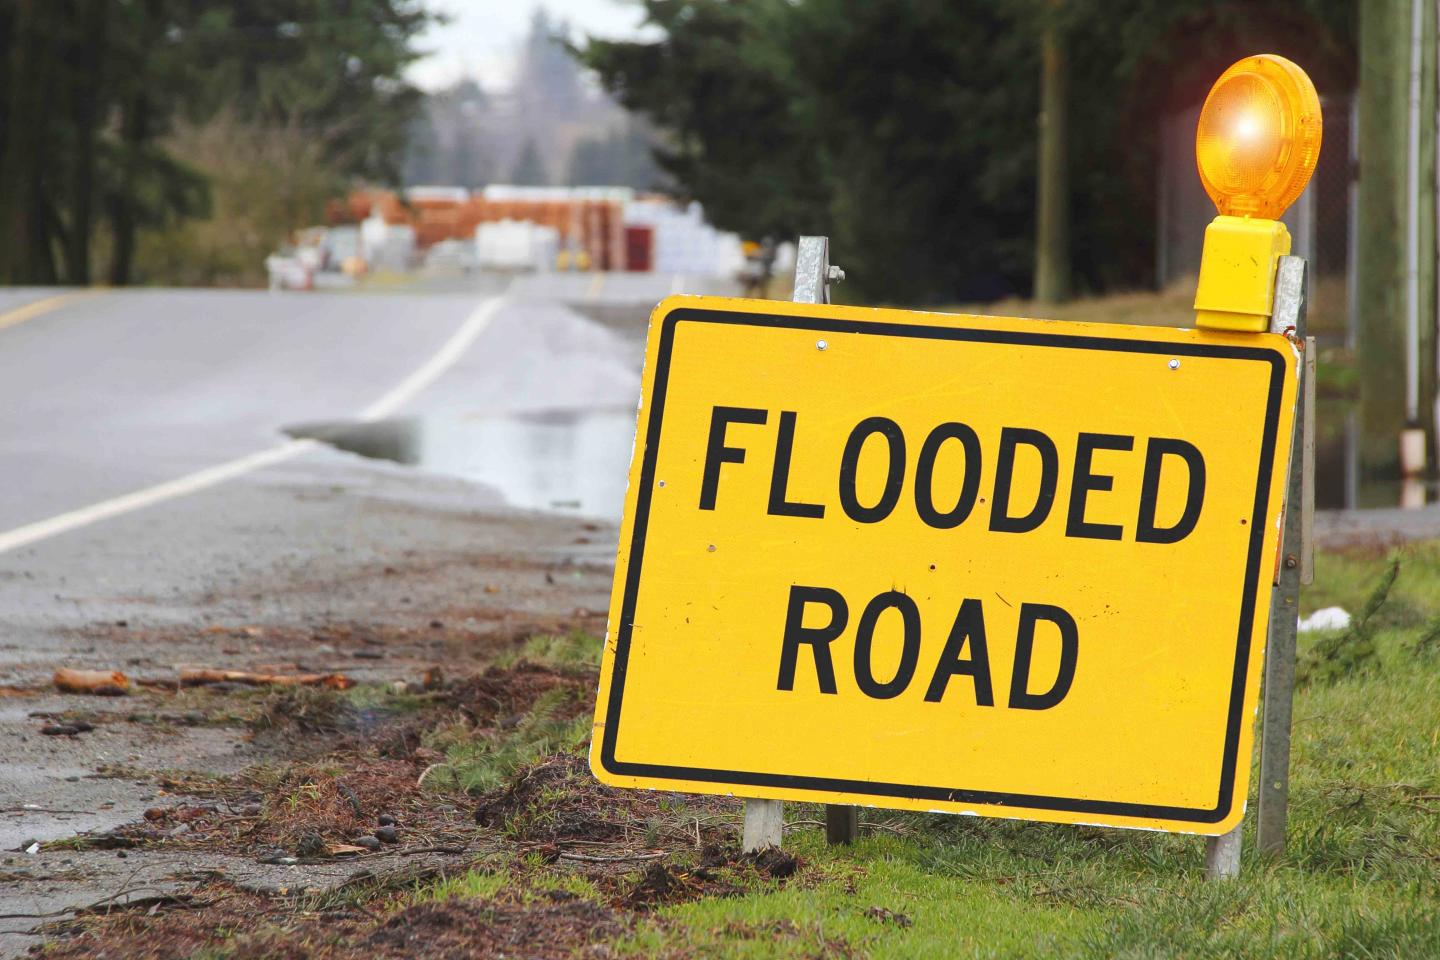 Rising Temperatures and Human Activity are Increasing Storm Runoff and Flash Floods